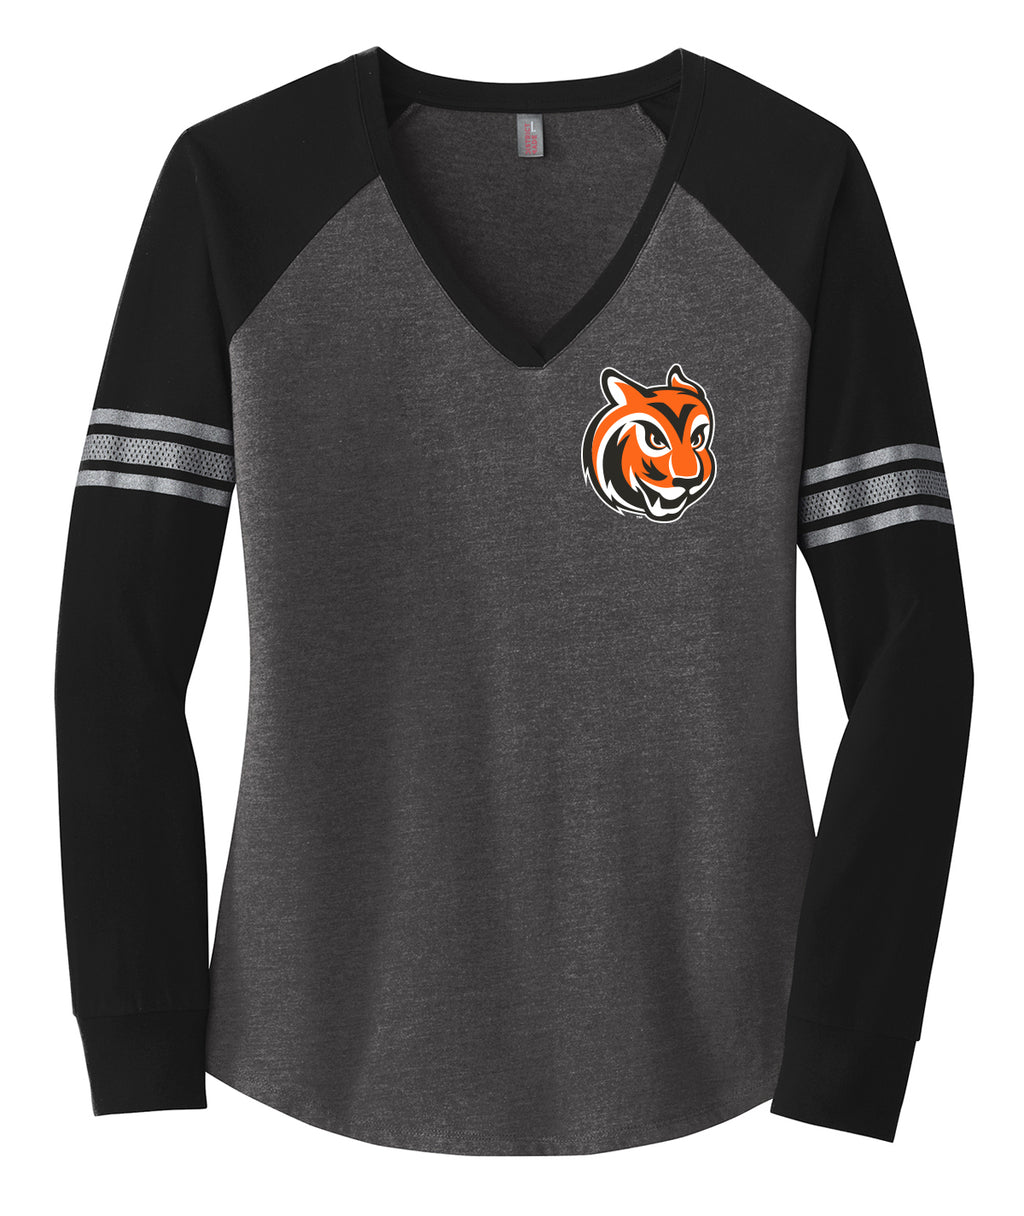 Tiger Head Womens V-Neck Long Sleeve Tee